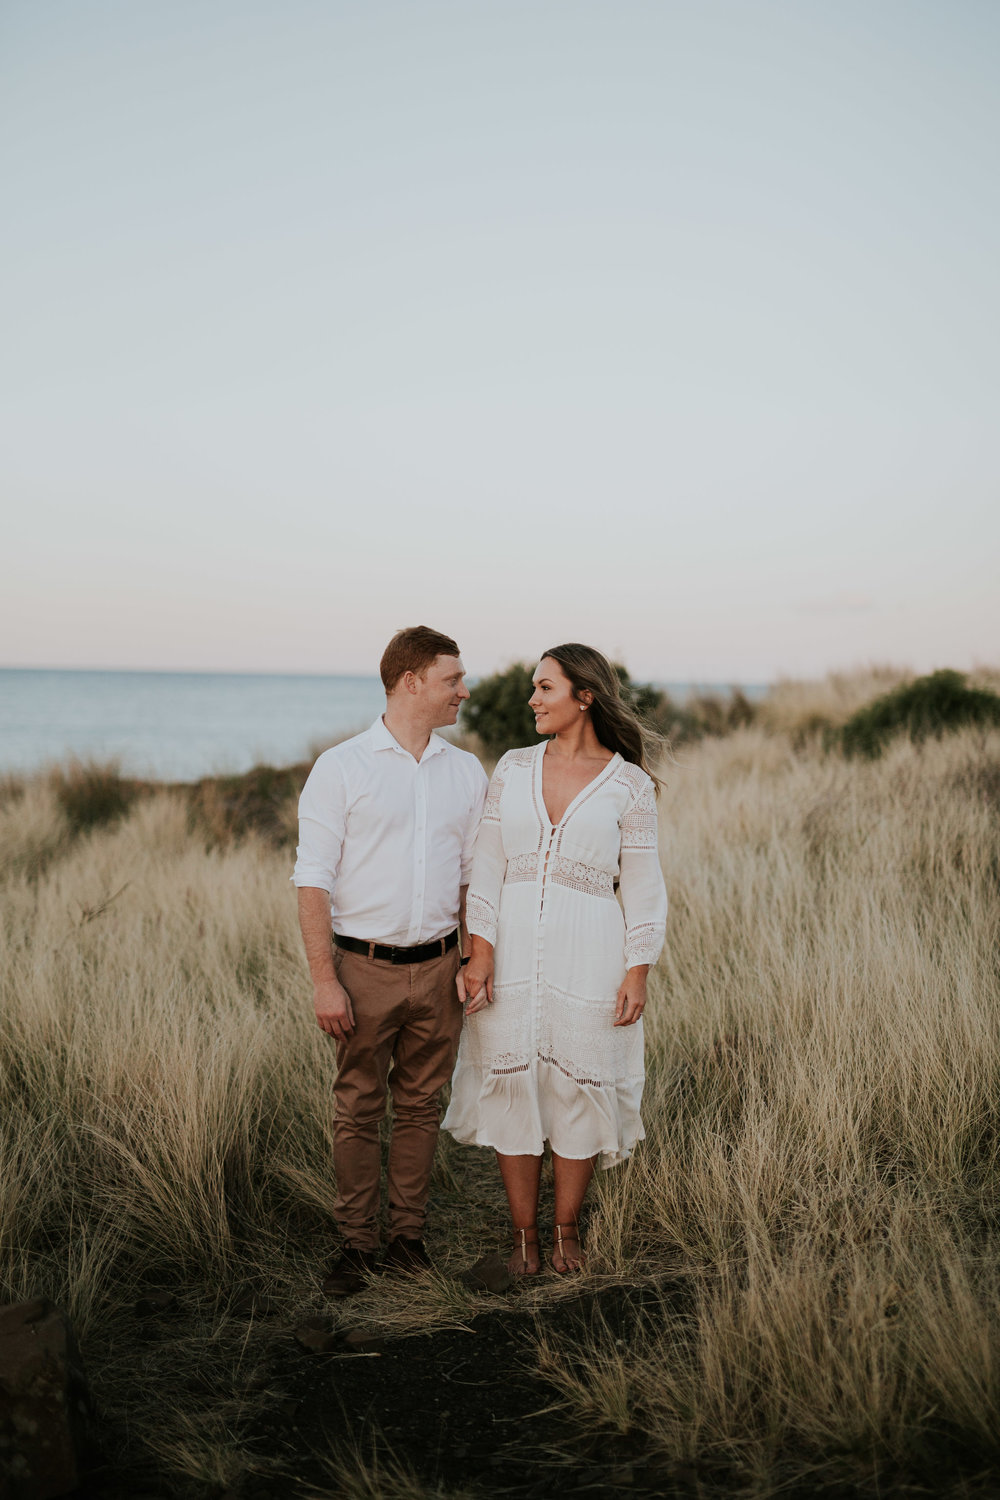 shanae+grant+Kiama+Engagement+Session-71.jpg